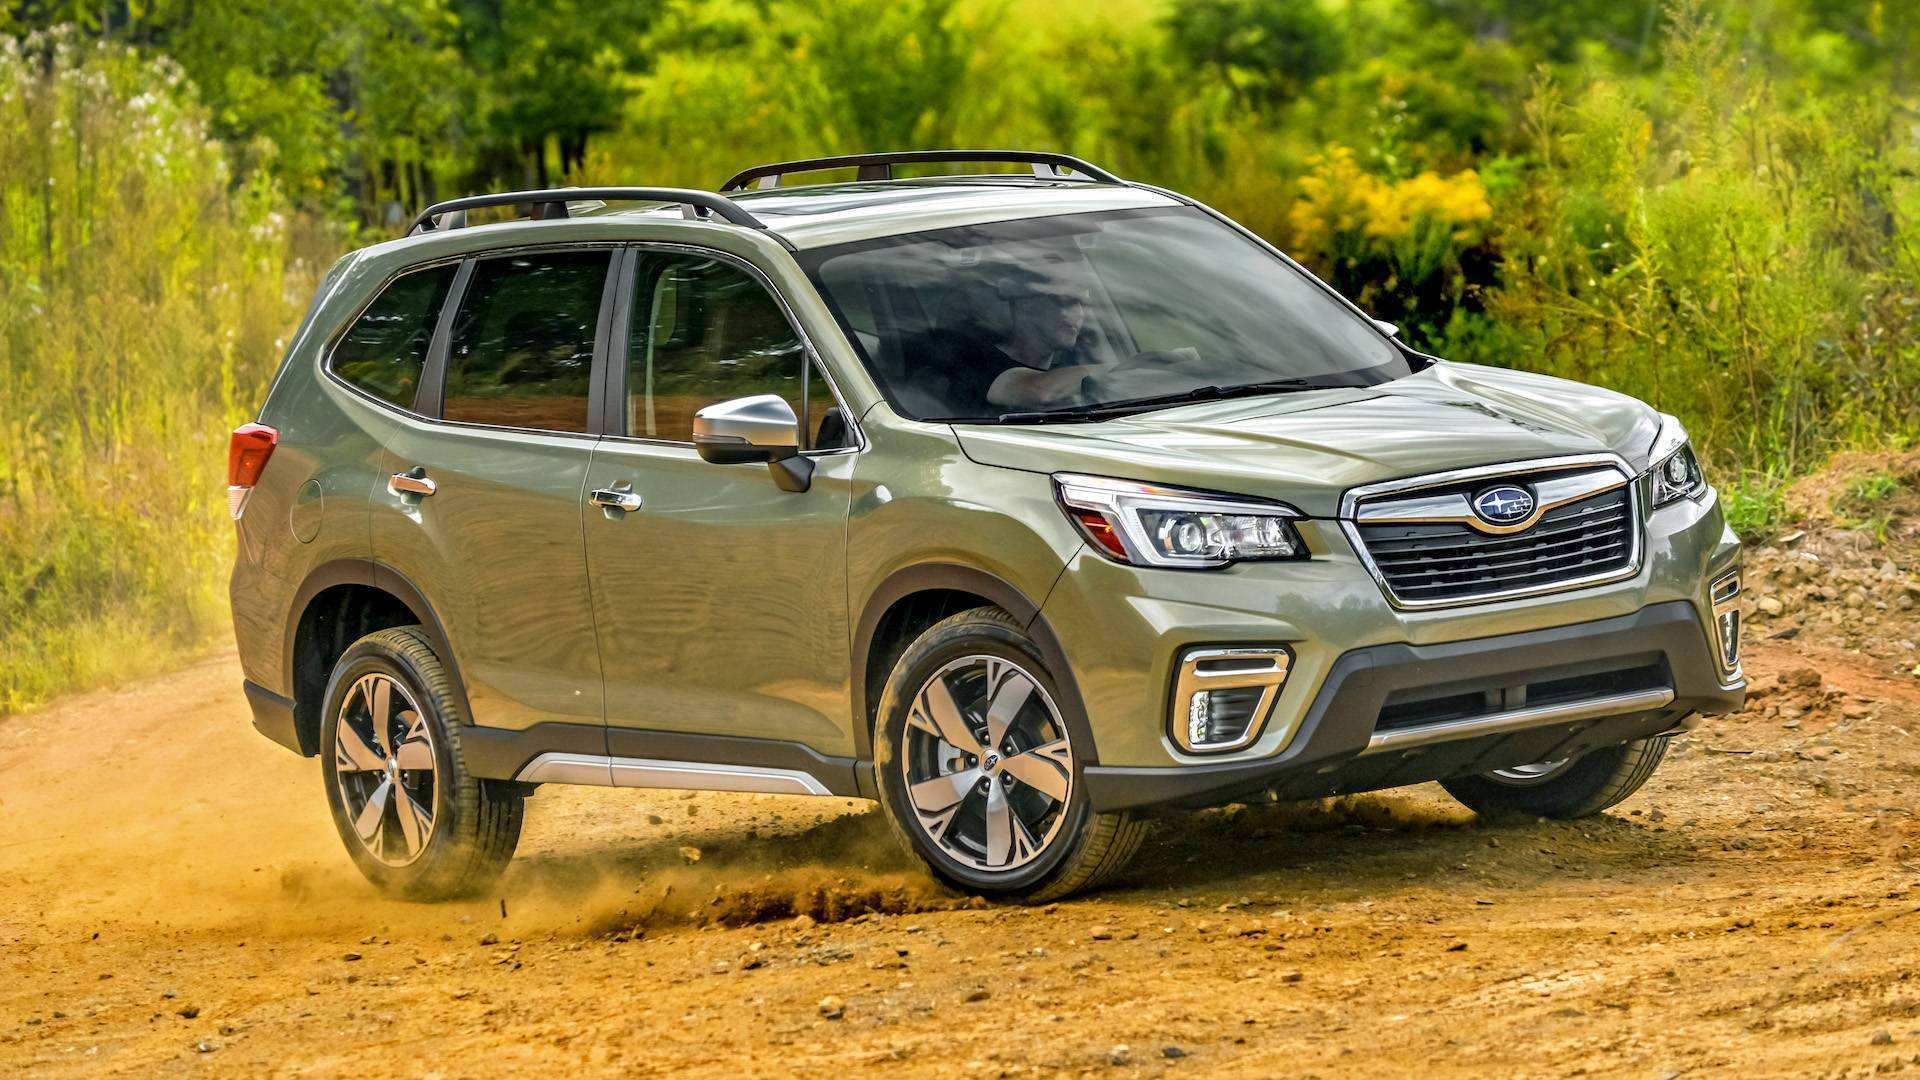 87 The Best Subaru Forester 2019 News Configurations